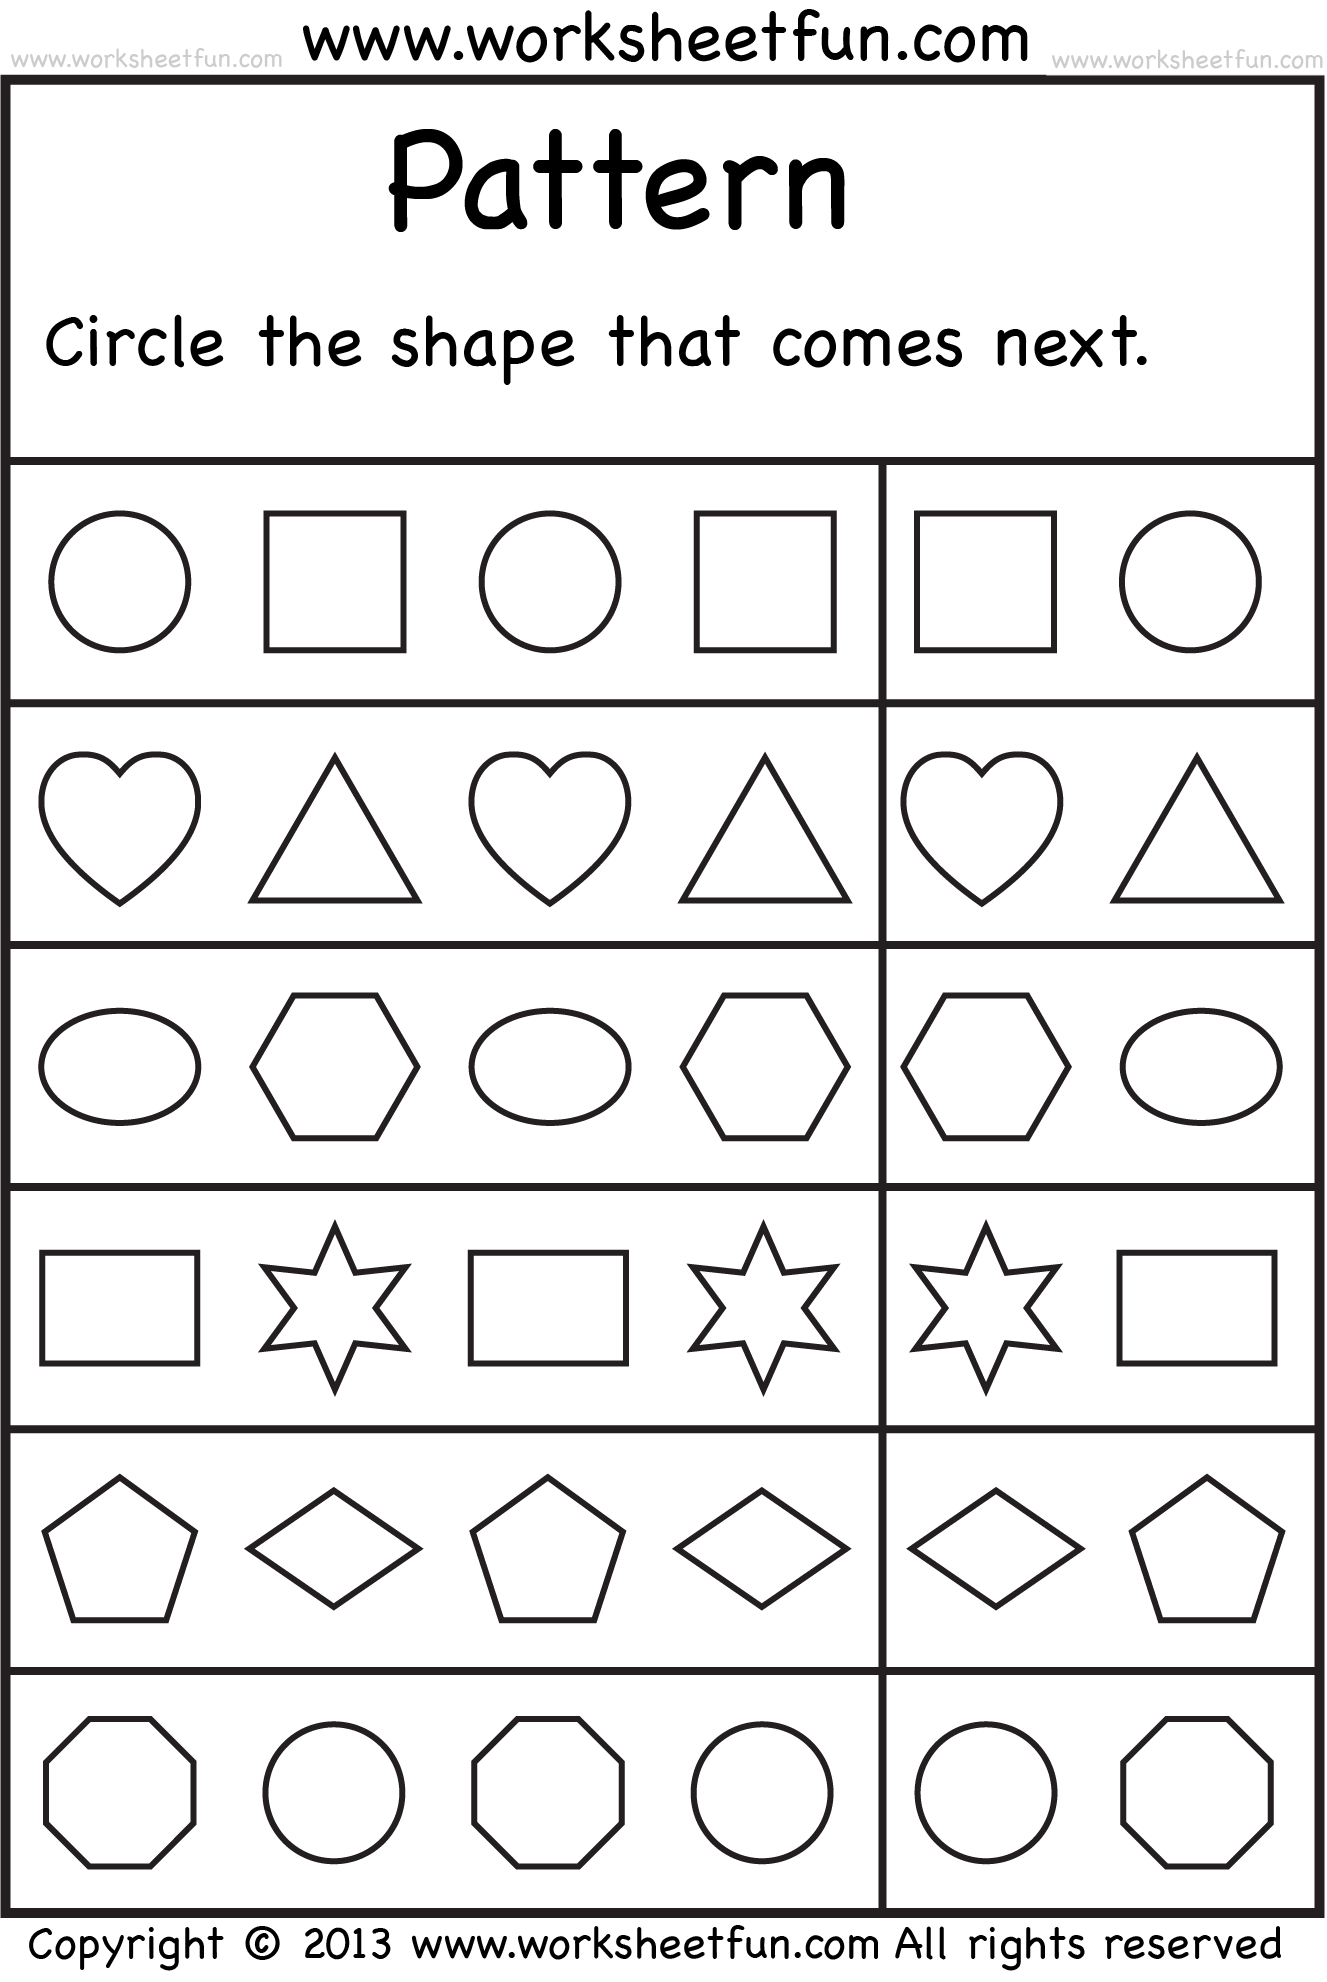 Proatmealus  Wonderful  Images About School Worksheets On Pinterest  Number Words  With Outstanding  Images About School Worksheets On Pinterest  Number Words Alphabet Worksheets And Free Printable Kindergarten Worksheets With Agreeable Worksheets For  Year Olds Also Free Online Marriage Counseling Worksheets In Addition Mathkids Worksheets And Adding And Subtracting Fractions Worksheets Pdf As Well As Forgiveness Worksheets Additionally Quadratics Worksheet From Pinterestcom With Proatmealus  Outstanding  Images About School Worksheets On Pinterest  Number Words  With Agreeable  Images About School Worksheets On Pinterest  Number Words Alphabet Worksheets And Free Printable Kindergarten Worksheets And Wonderful Worksheets For  Year Olds Also Free Online Marriage Counseling Worksheets In Addition Mathkids Worksheets From Pinterestcom